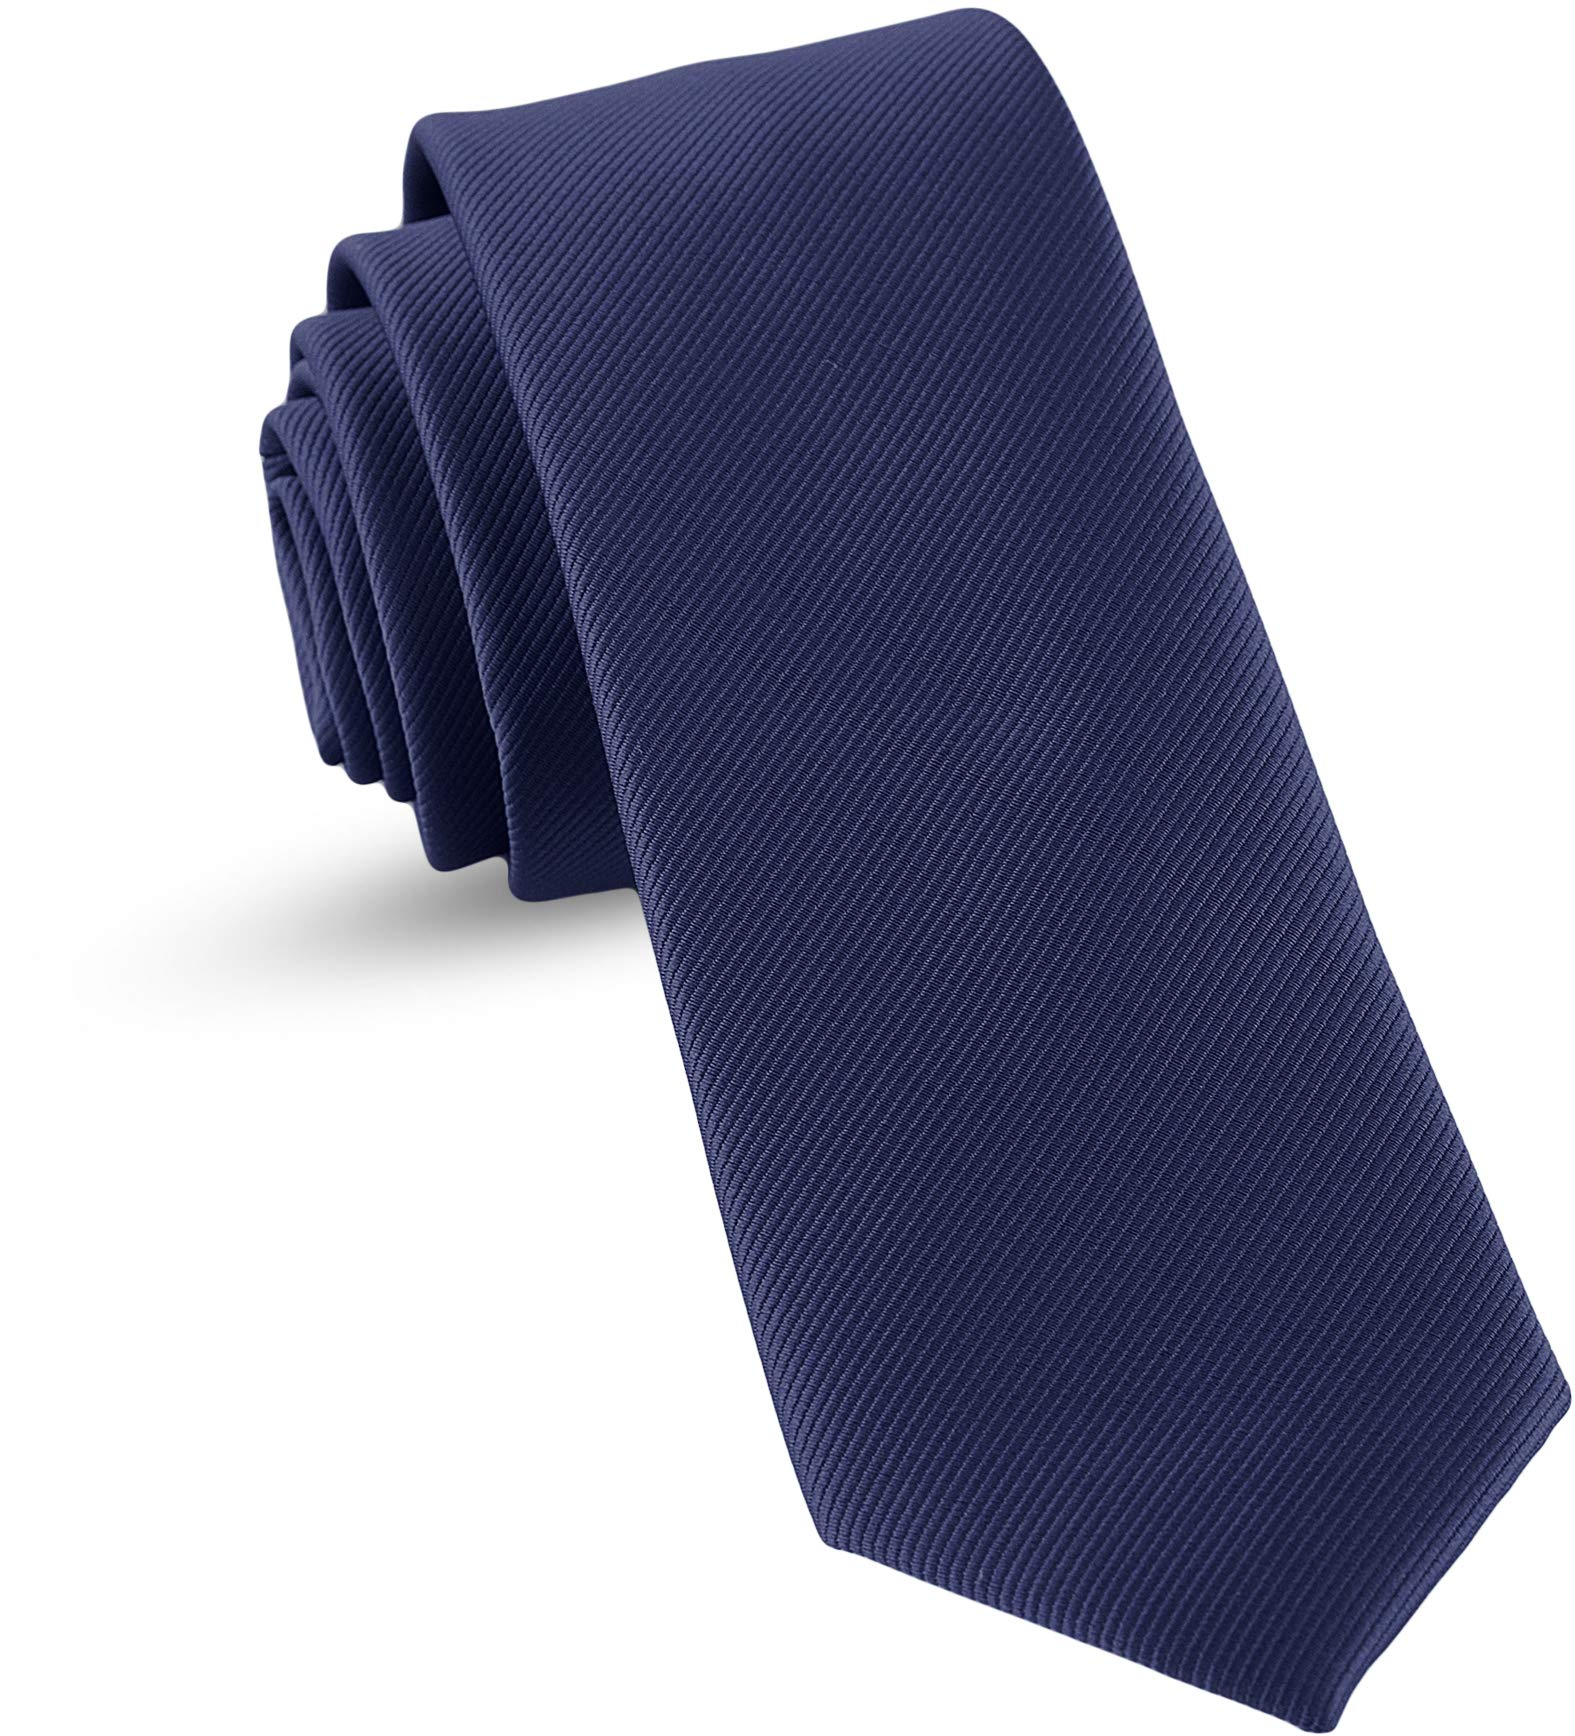 Handmade Self Tie Ties For Boys Woven Boys Navy Blue Ties: Neckties For Kids Wedding Graduation by LUTHER PIKE SEATTLE